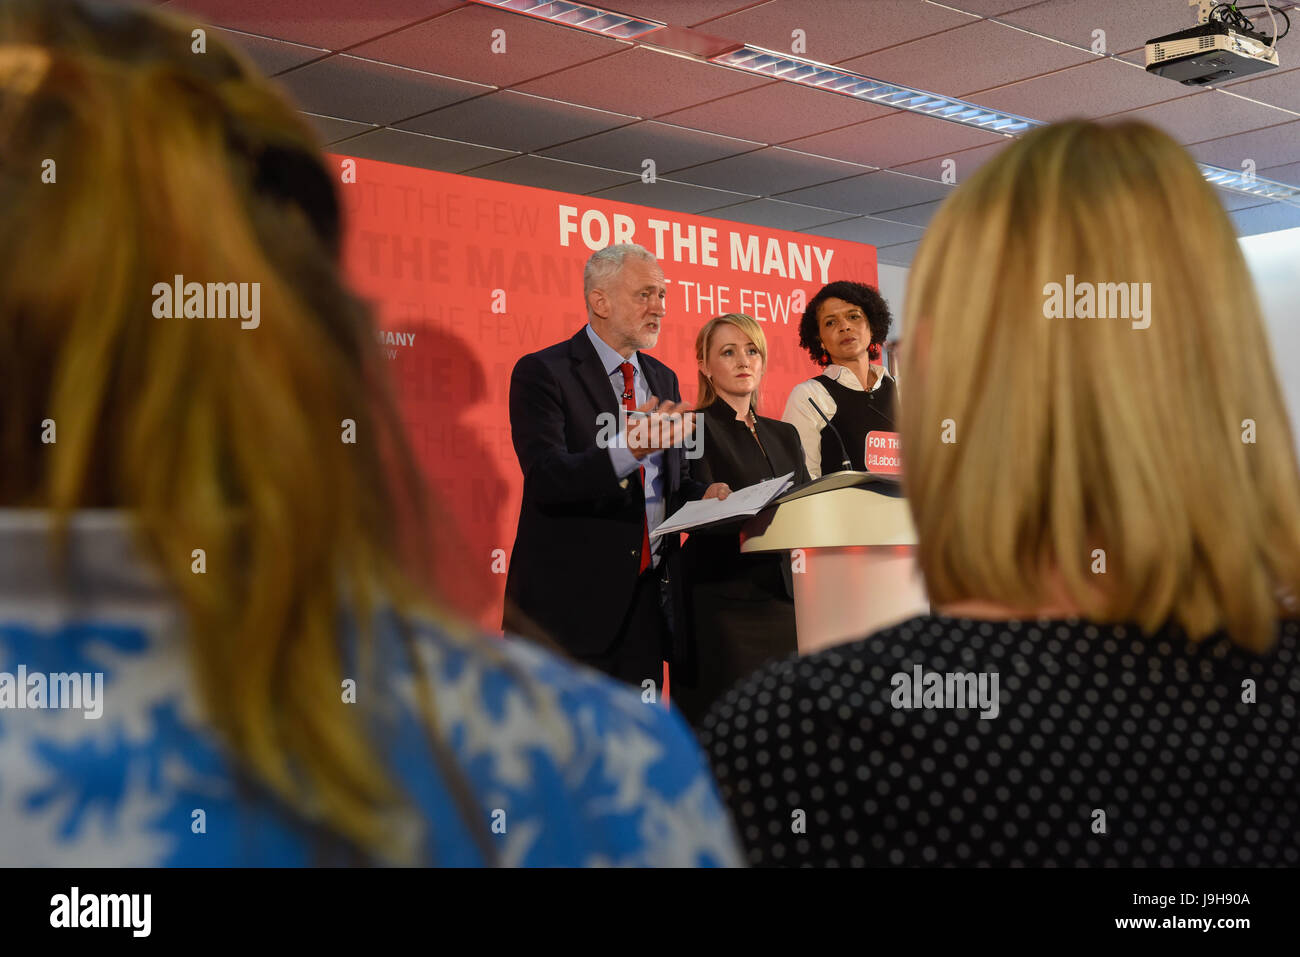 York, UK. 2nd June, 2017. Labour leader Jeremy Corbyn visits York Science Park ahead of a live edition of BBC Question - Stock Image